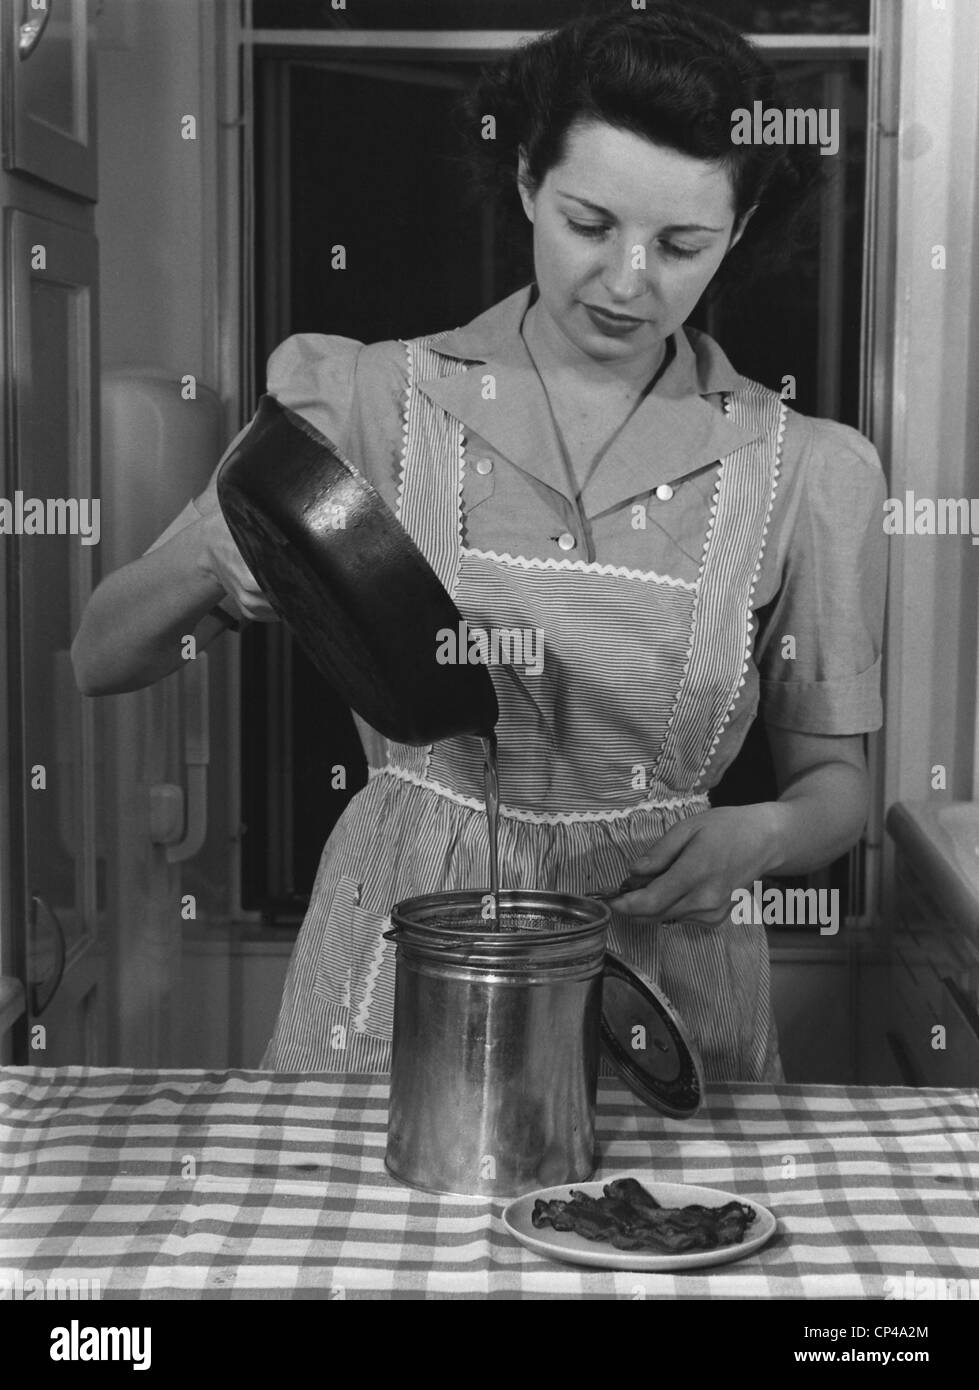 Housewife pouring waste fats that will be processed into ammunition for America's World War 2 military. - Stock Image